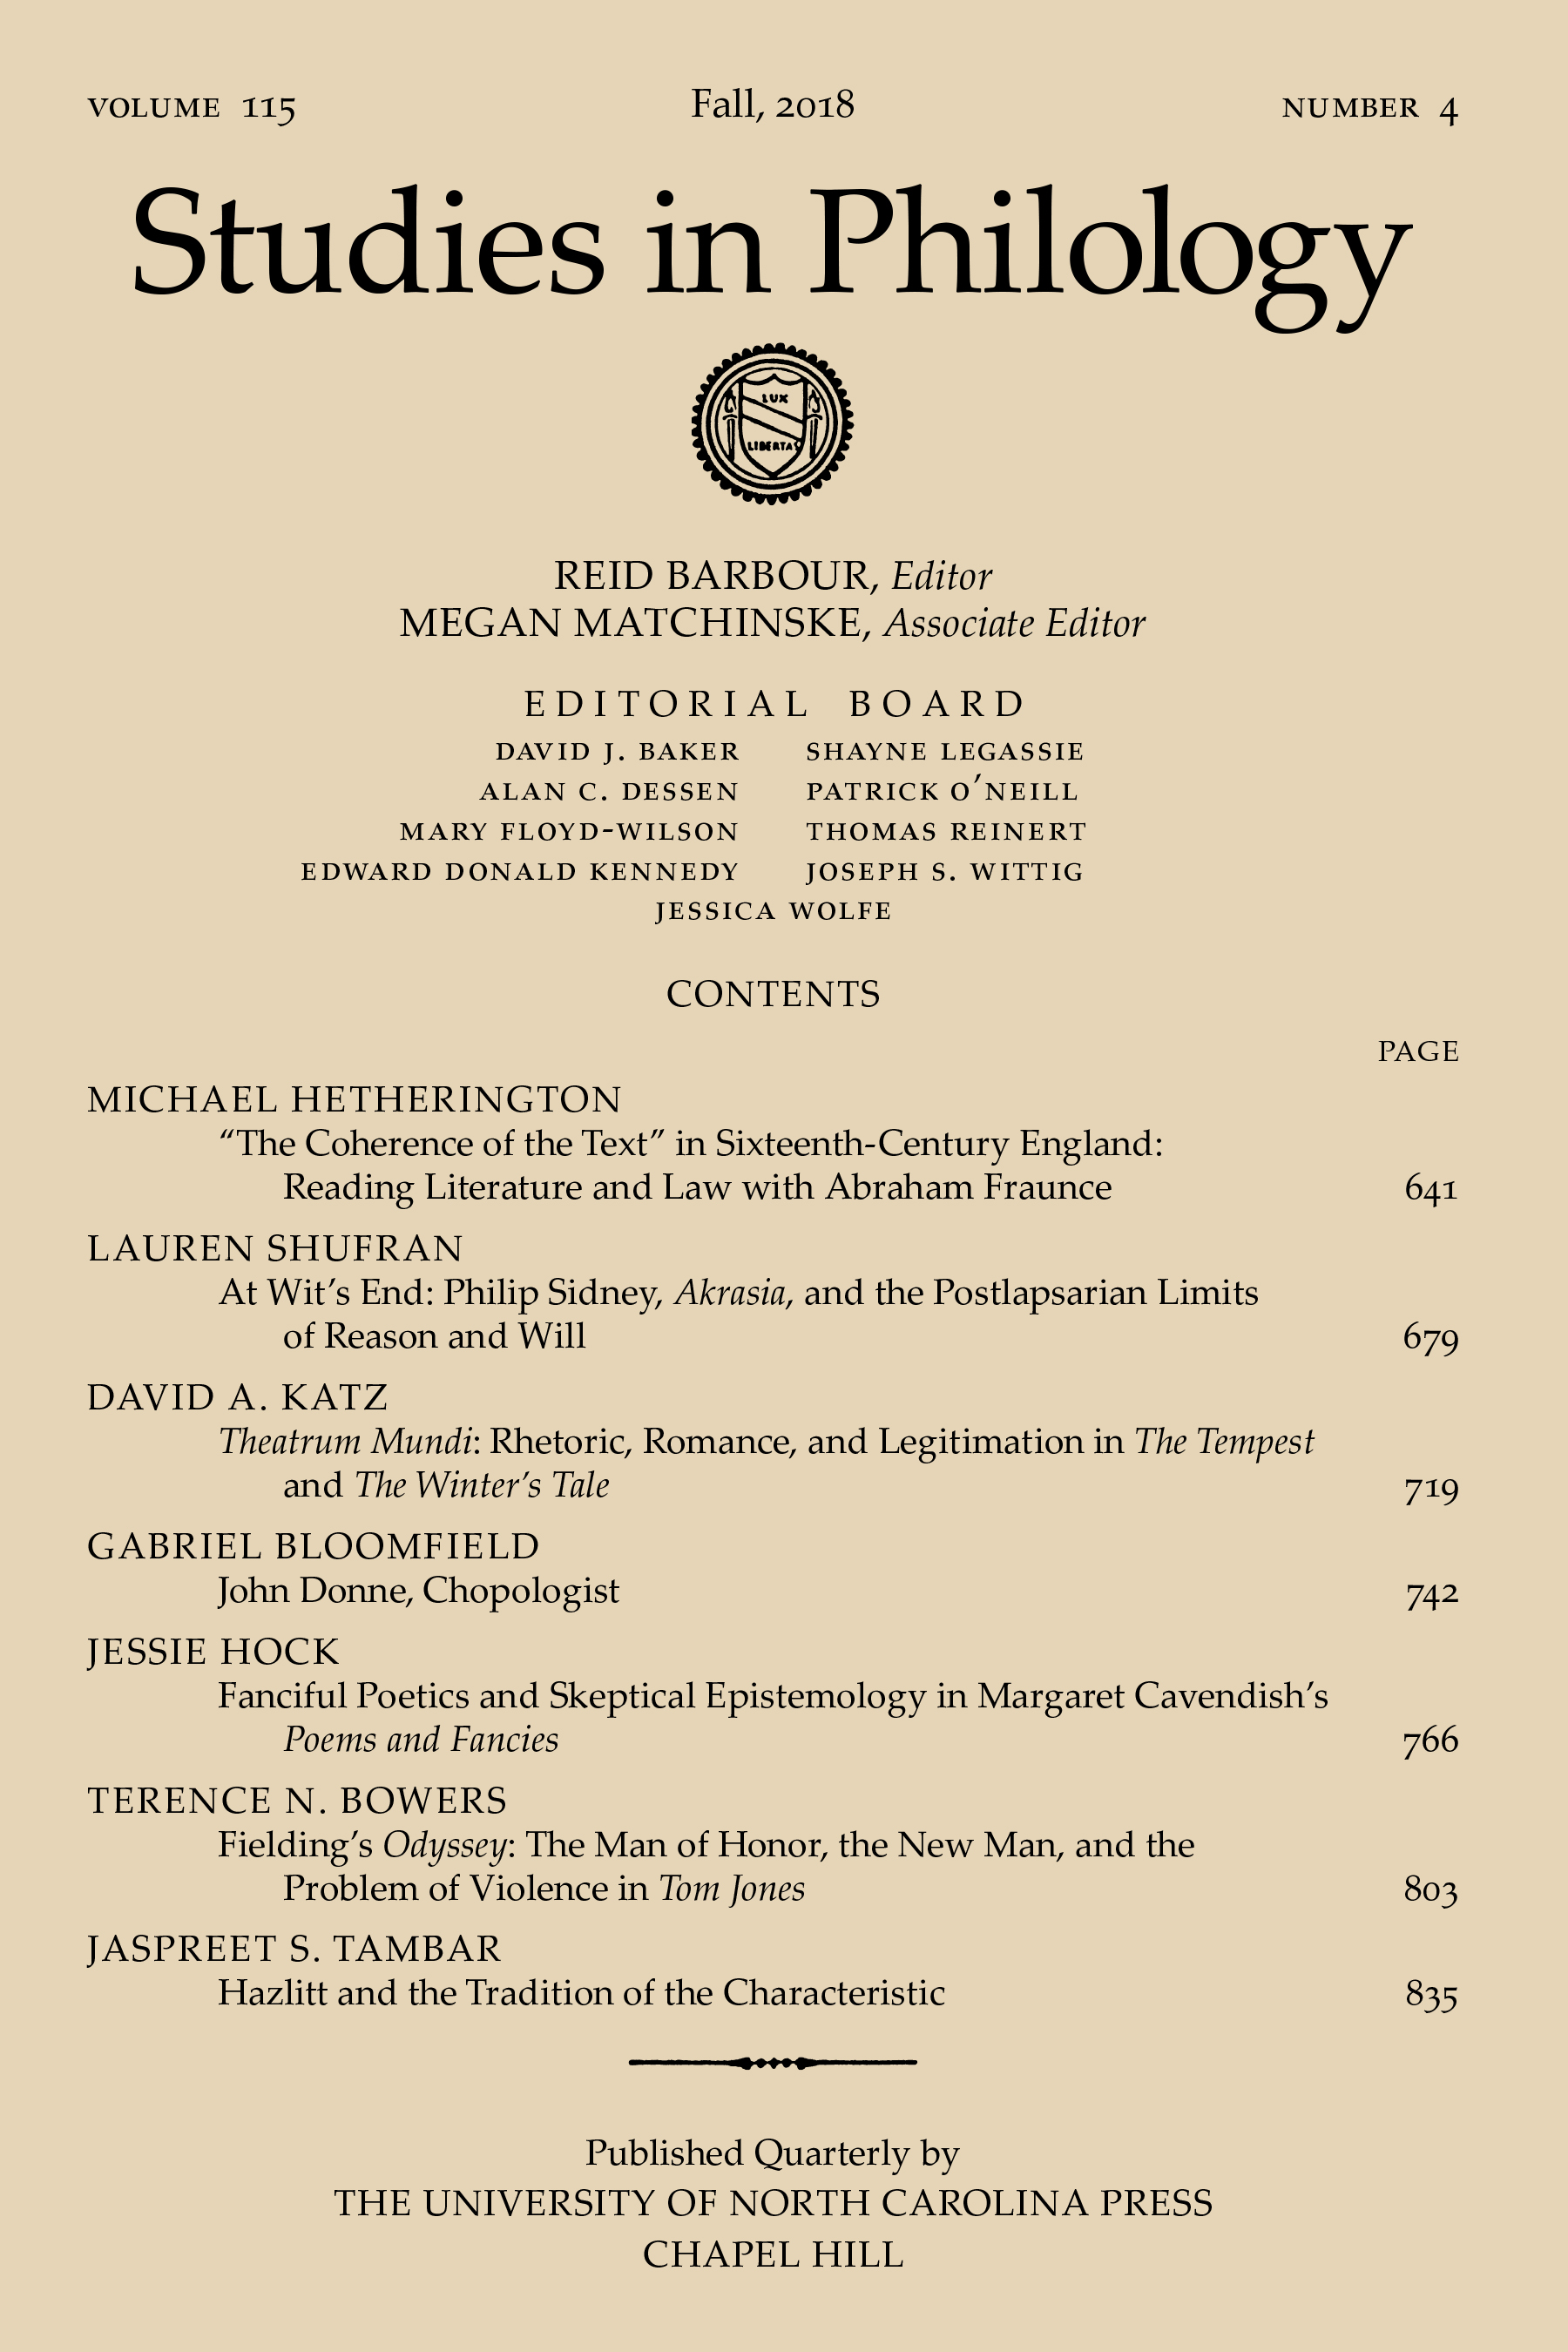 Studies in Philology, vol. 115 issue 4